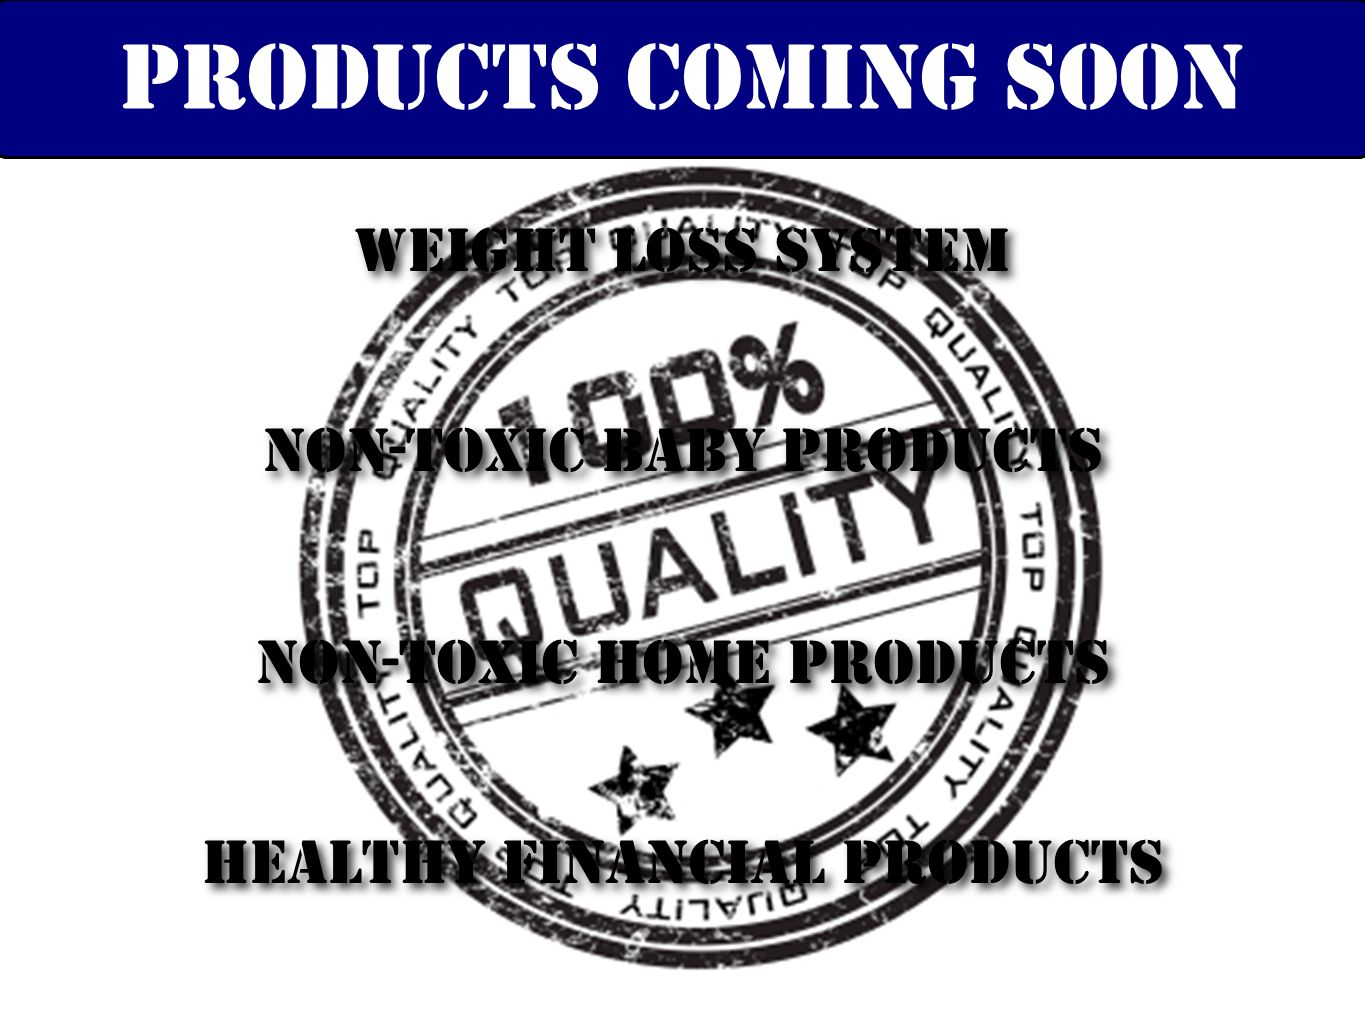 PRODUCT EXPANSION PLANS Weight loss system Non-Toxic Baby Products non-toxic home products Products Coming Soon healthy financial products